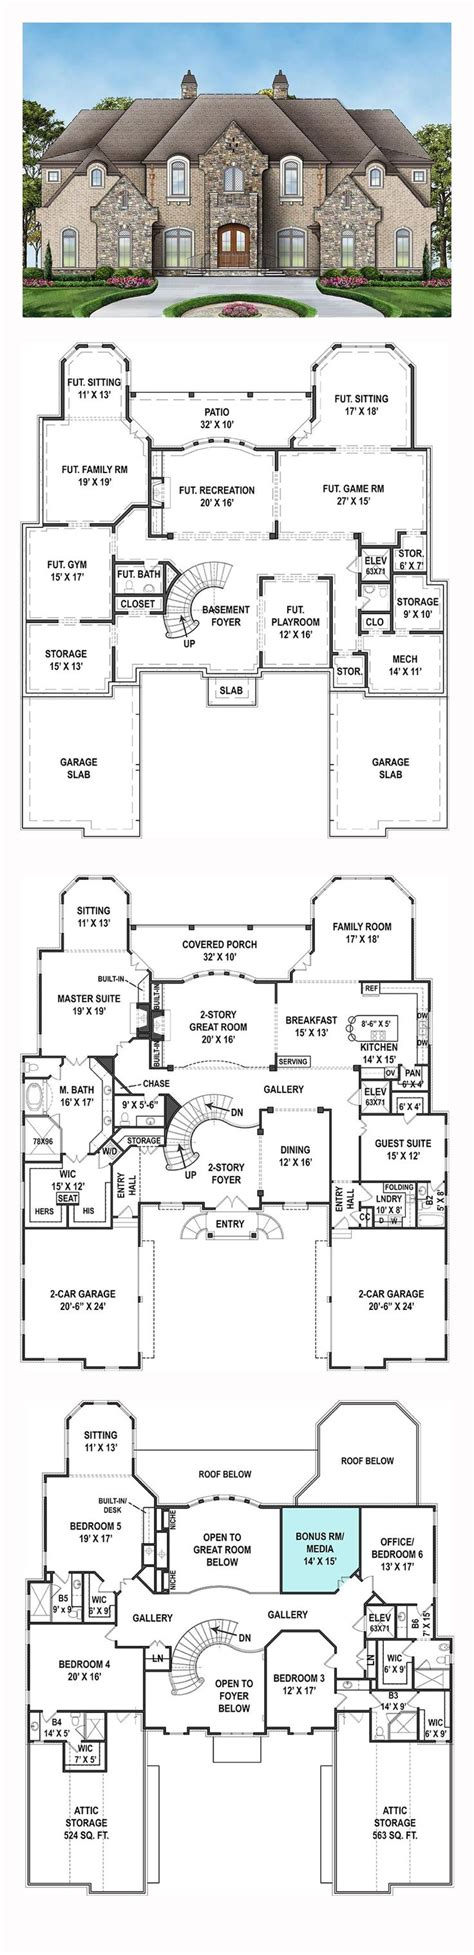 luxury mansion floor plans best 25 family house plans ideas on sims 3